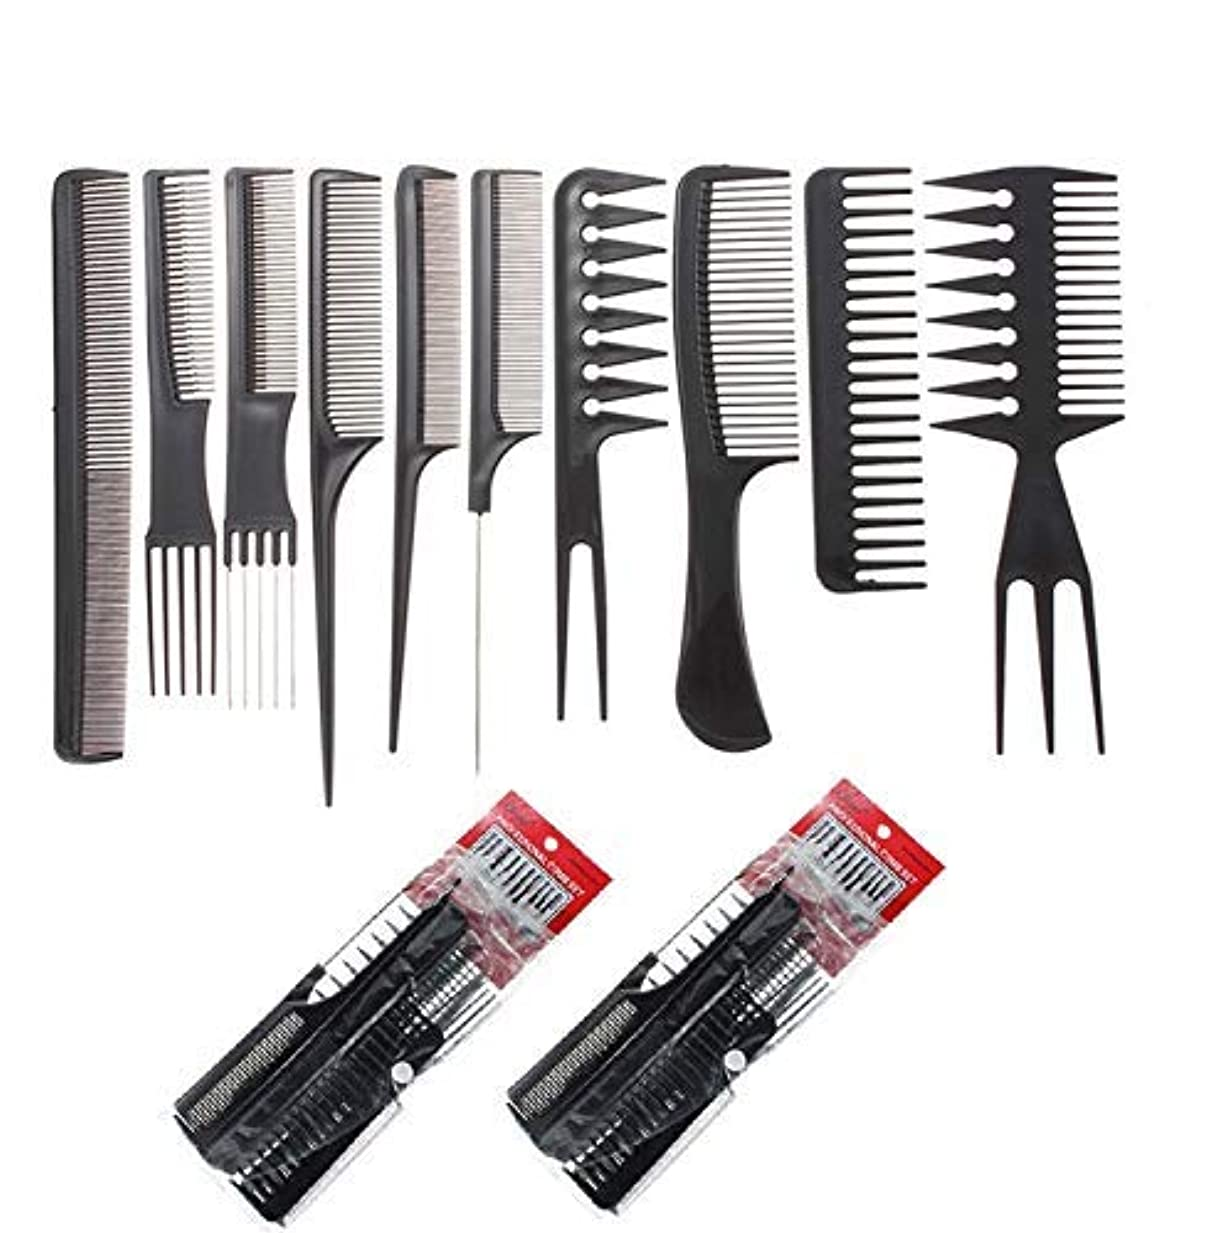 ガラガラ時期尚早思いつくSBYURE 20pcs Professional Styling Comb Set,10pcs/Set,2 Set Salon Hairdressing Combs Hair Care Styling Tools Hair...